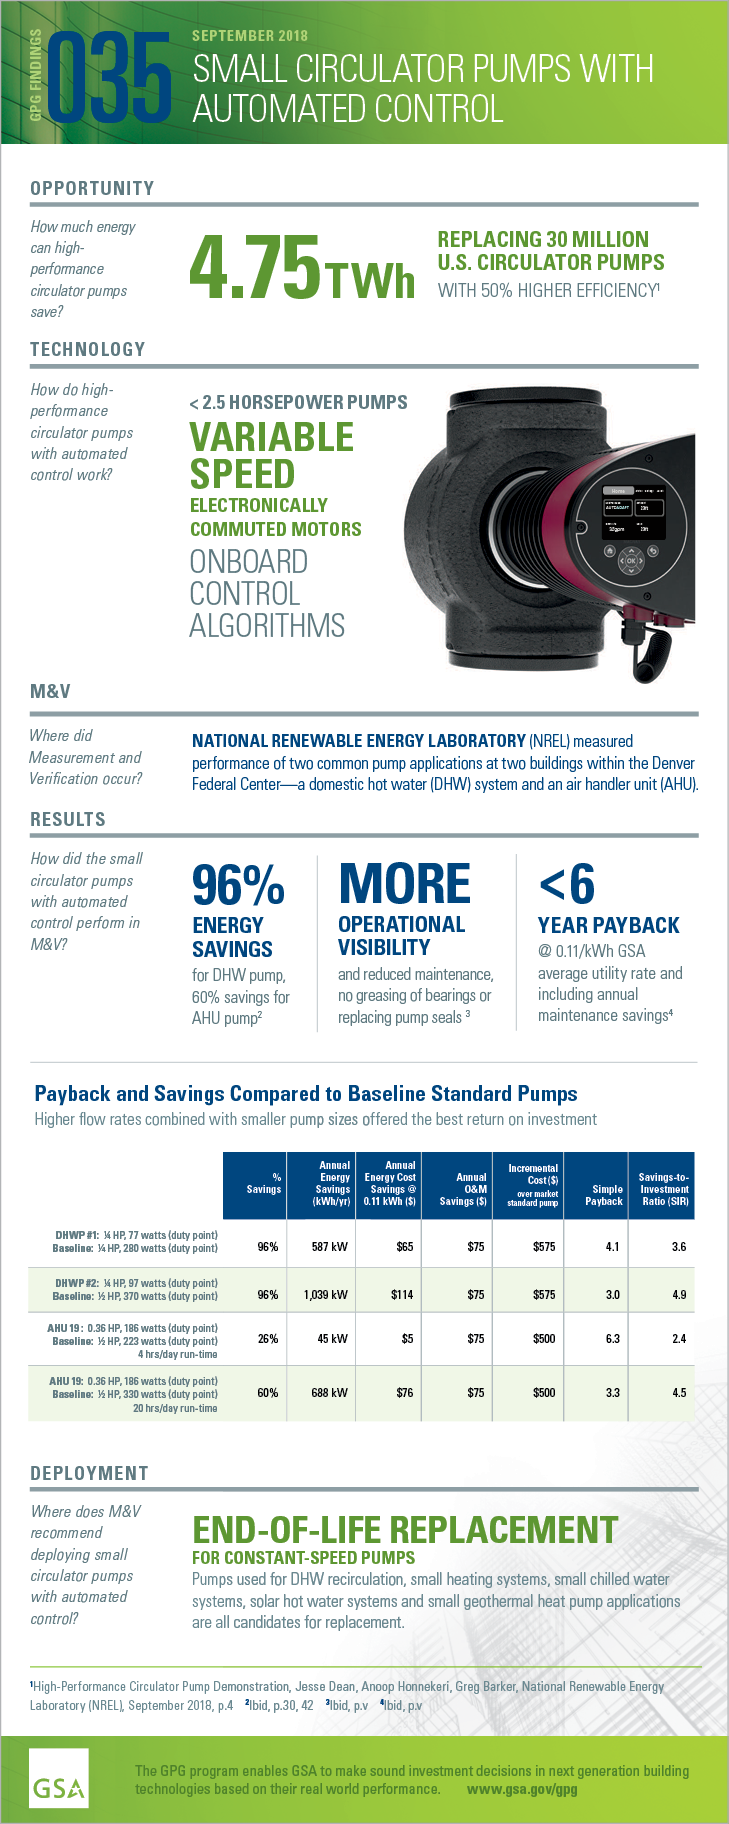 GPG Findings 035, September 2018, Small Circulator Pumps with Automated Control. OPPORTUNITY: How much energy can high performance circulator pumps save? 4.75TWh REPLACING 30 MILLION U.S. CIRCULATOR PUMPS WITH 50% HIGHER EFFICIENCY. TECHNOLOGY: How do highperformance circulator pumps with automated control work? < 2.5 HORSEPOWER PUMPS VARIABLE SPEED ELECTRONICALLY COMMUTED MOTORS ONBOARD CONTROL ALGORITHMS. M&V: Where did Measurement and Verification occur? NATIONAL RENEWABLE ENERGY LABORATORY (NREL) measured performance of two common pump applications at two buildings within the Denver Federal Center—a domestic hot water (DHW) system and an air handler unit (AHU). RESULTS: How did the small circulator pumps with automated control perform in M&V? 96% ENERGY SAVINGS for DHW pump, 60% savings for AHU pump. MORE OPERATIONAL VISIBILITY and reduced maintenance, no greasing of bearings or replacing pump seals. <6 YEAR PAYBACK @ 0.11/kWh GSA average utility rate and including annual maintenance savings. Payback and Savings Compared to Baseline Standard Pumps Higher flow rates combined with smaller pump sizes offered the best return on investment. DEPLOYMENT: Where does M&V recommend deploying small circulator pumps with automated control? END-OF-LIFE REPLACEMENT FOR CONSTANT-SPEED PUMPS Pumps used for DHW recirculation, small heating systems, small chilled water systems, solar hot water systems and small geothermal heat pump applications are all candidates for replacement.